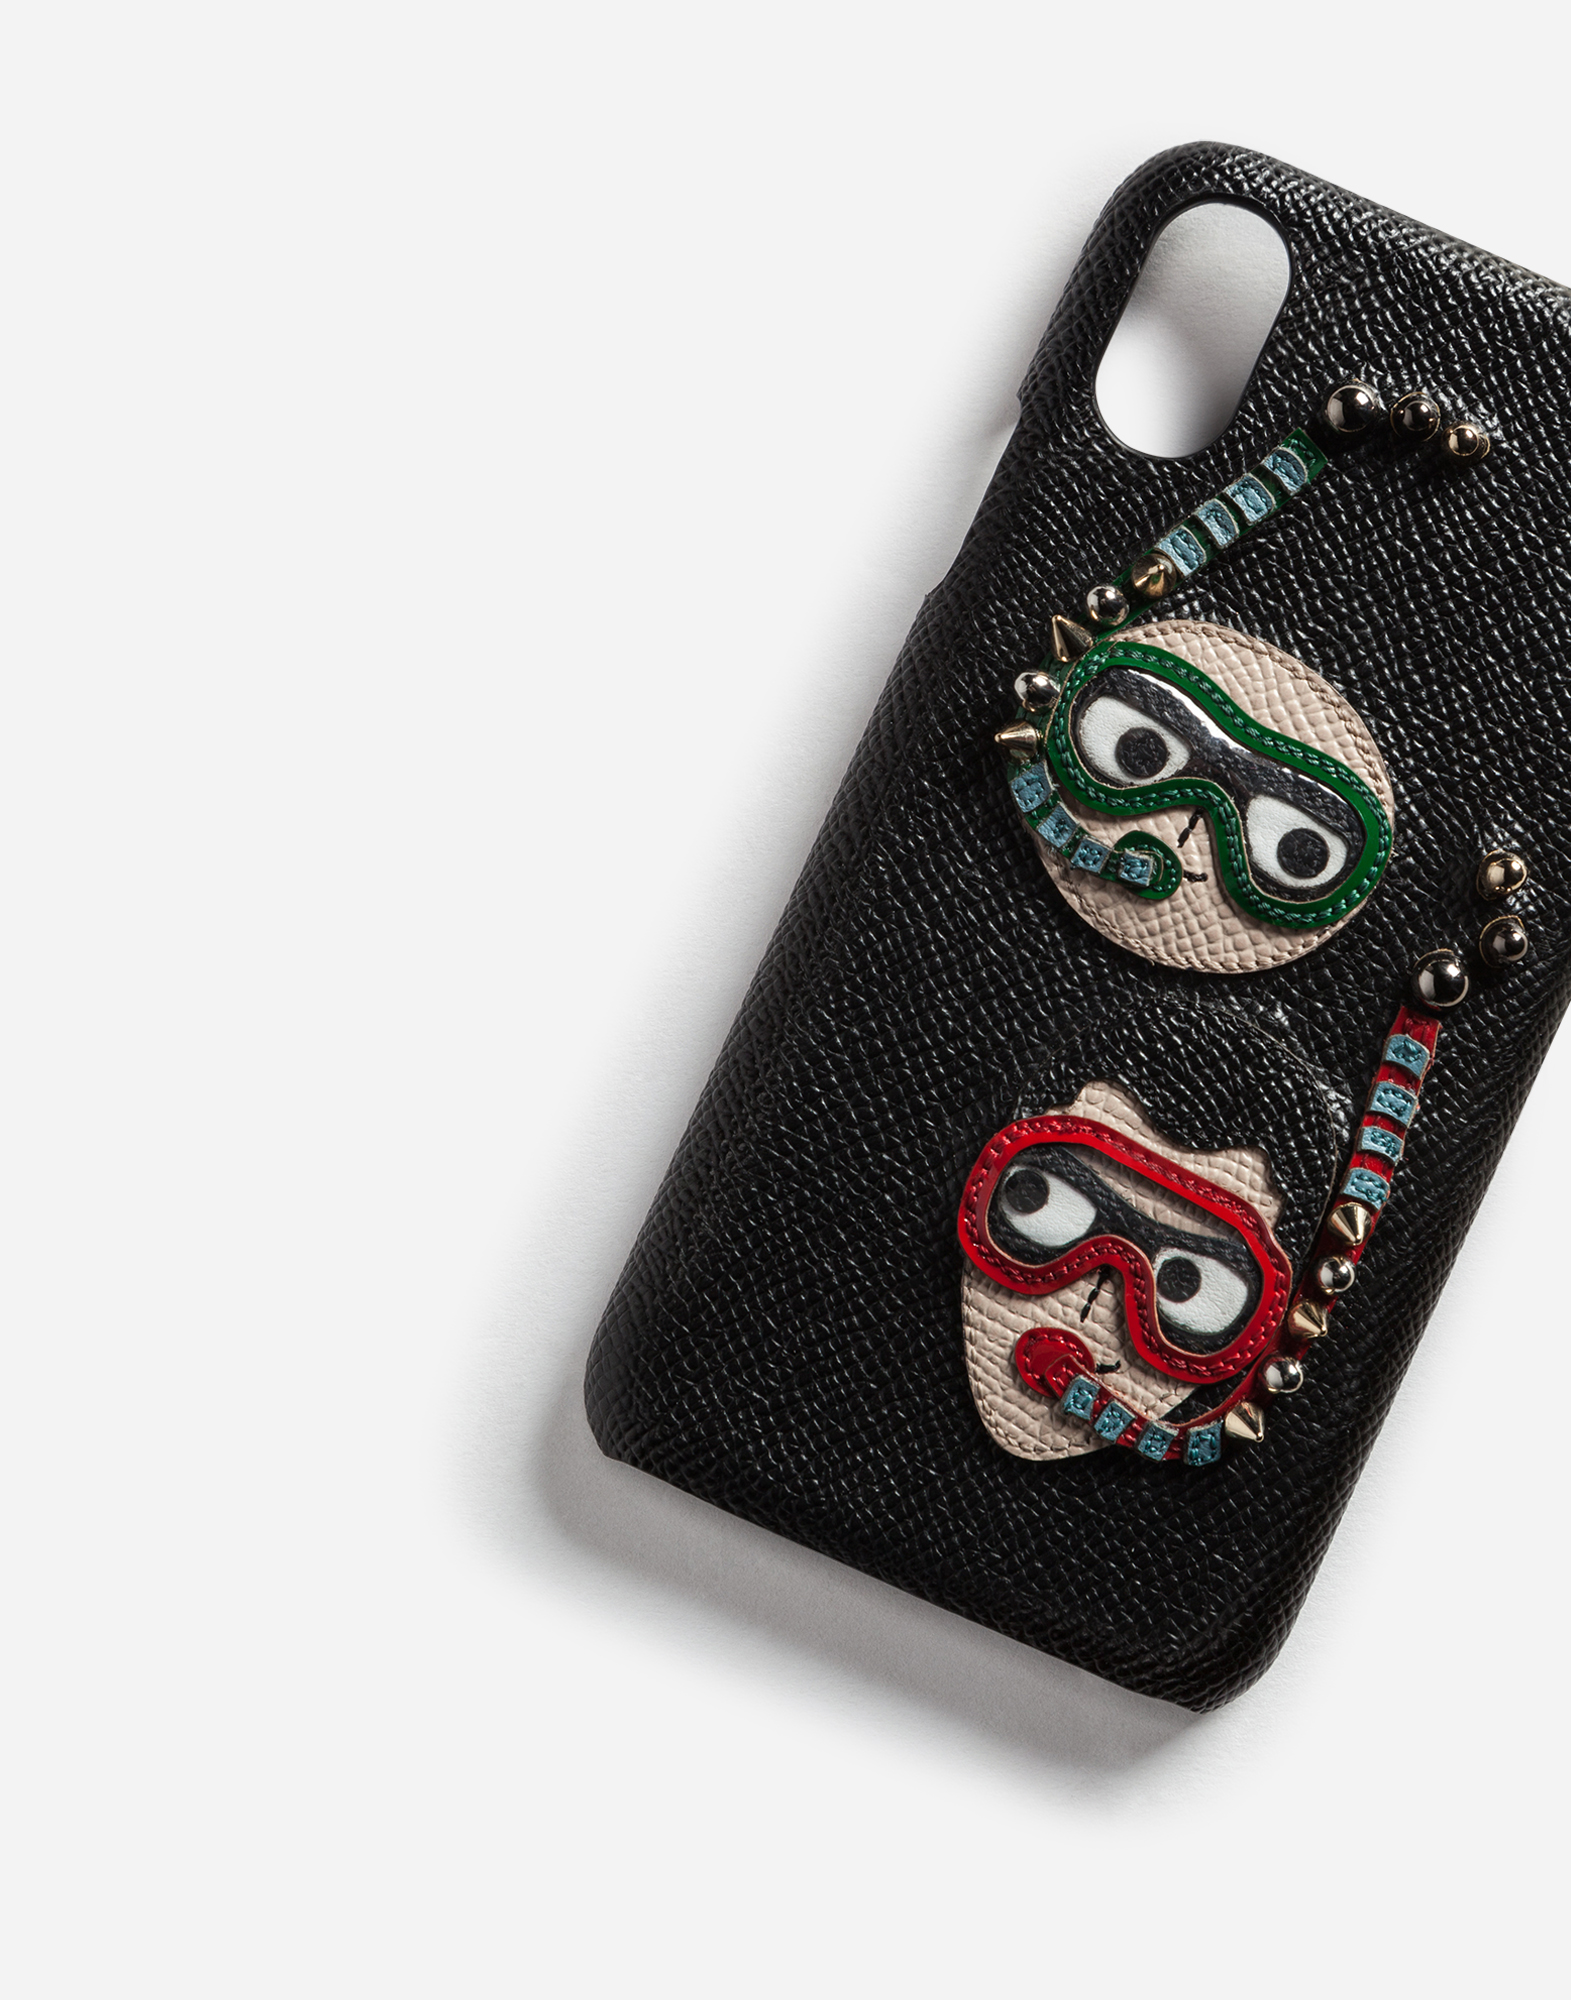 IPHONE X COVER IN DAUPHINE CALFSKIN WITH DIVER-STYLE PATCHES OF THE DESIGNERS